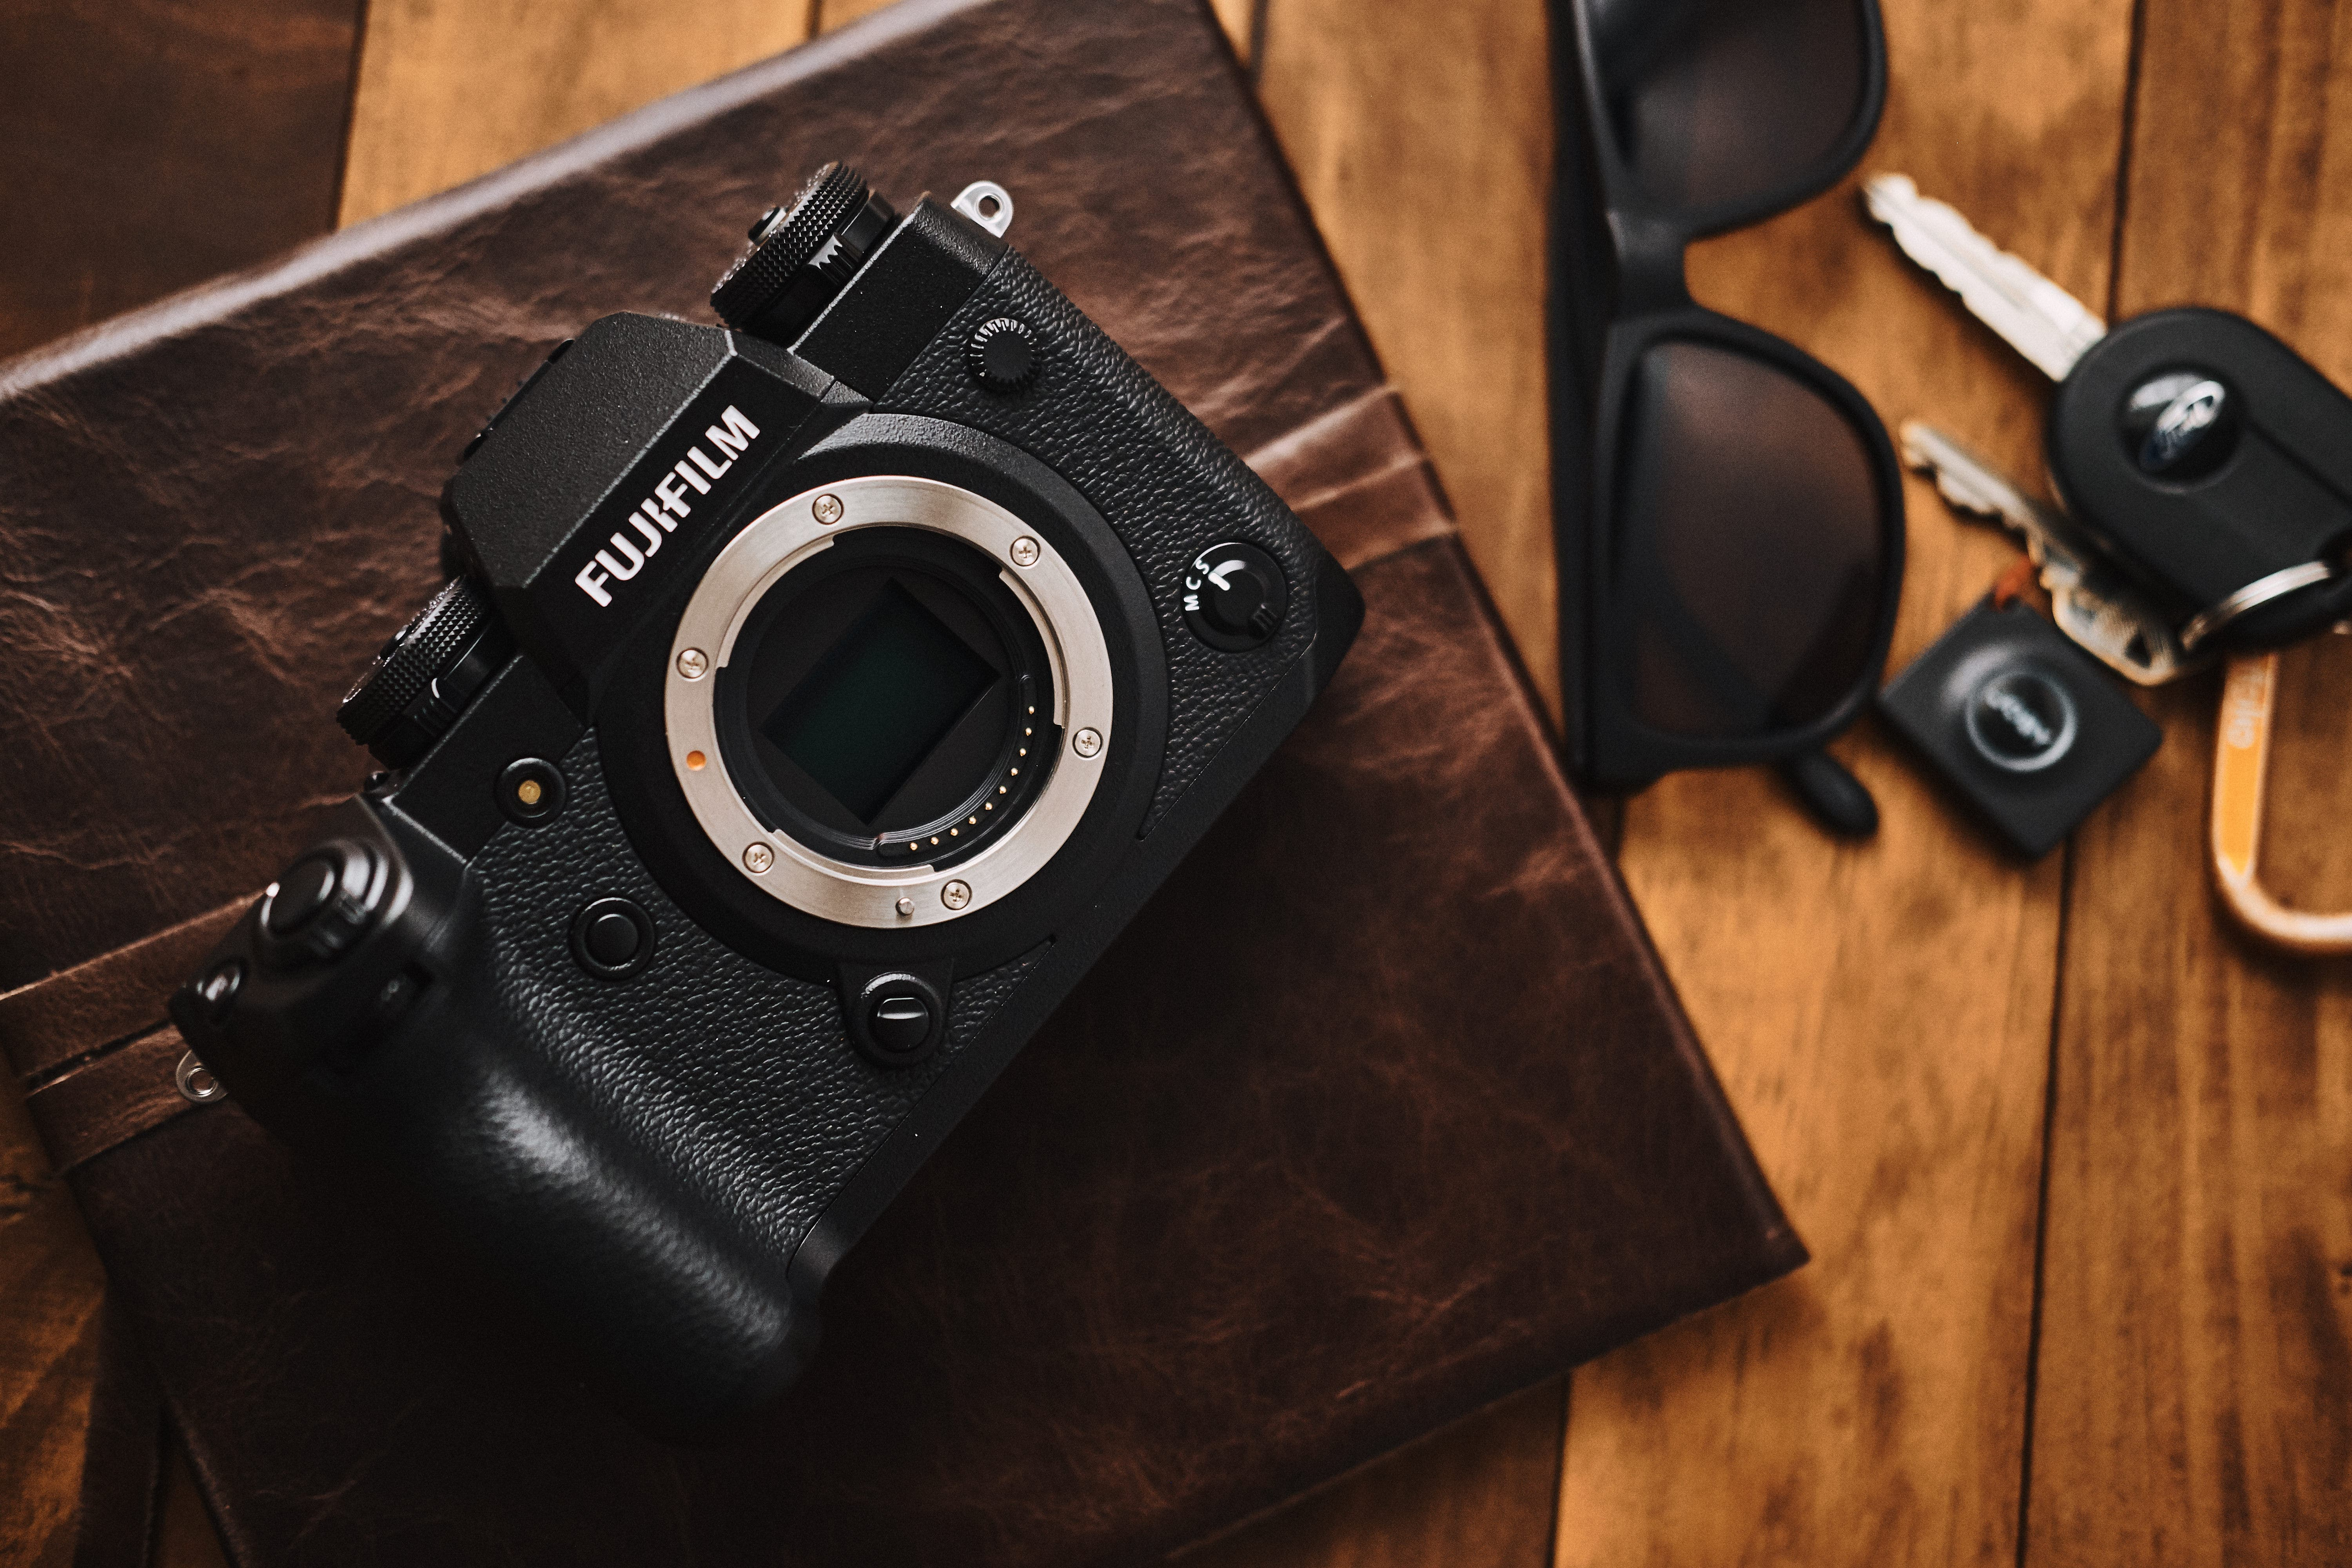 I Was Wrong About the Fujifilm XH1